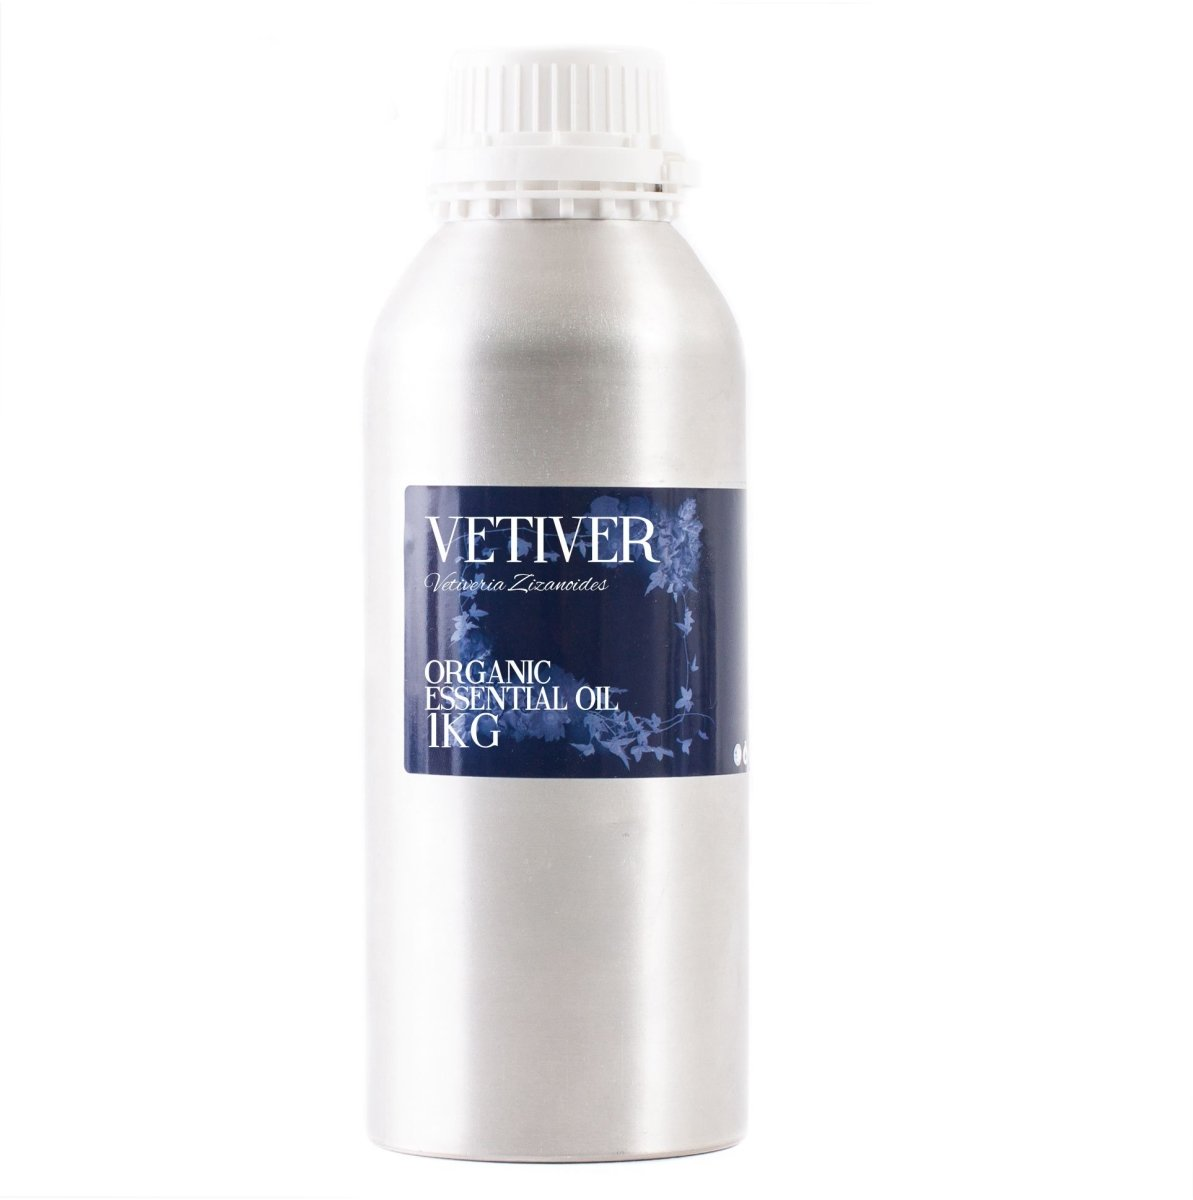 Vetiver Organic Essential Oil - Mystic Moments UK